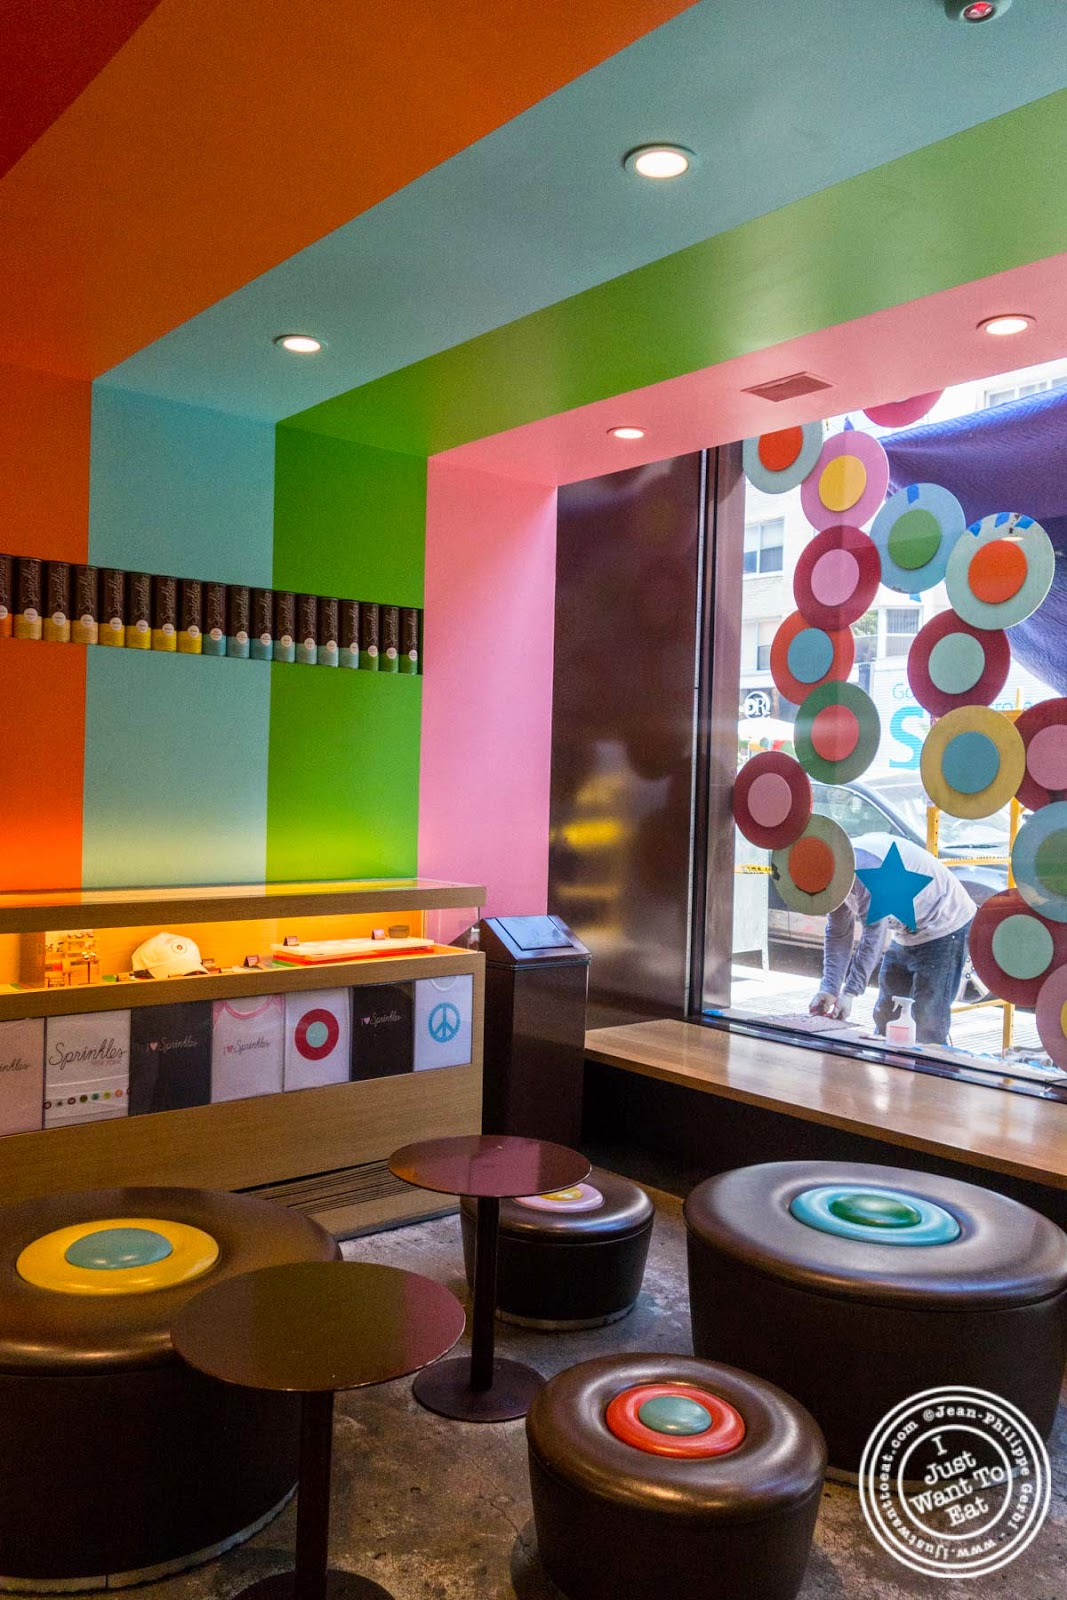 Decor at Sprinkles Cupcakes in New York, NY